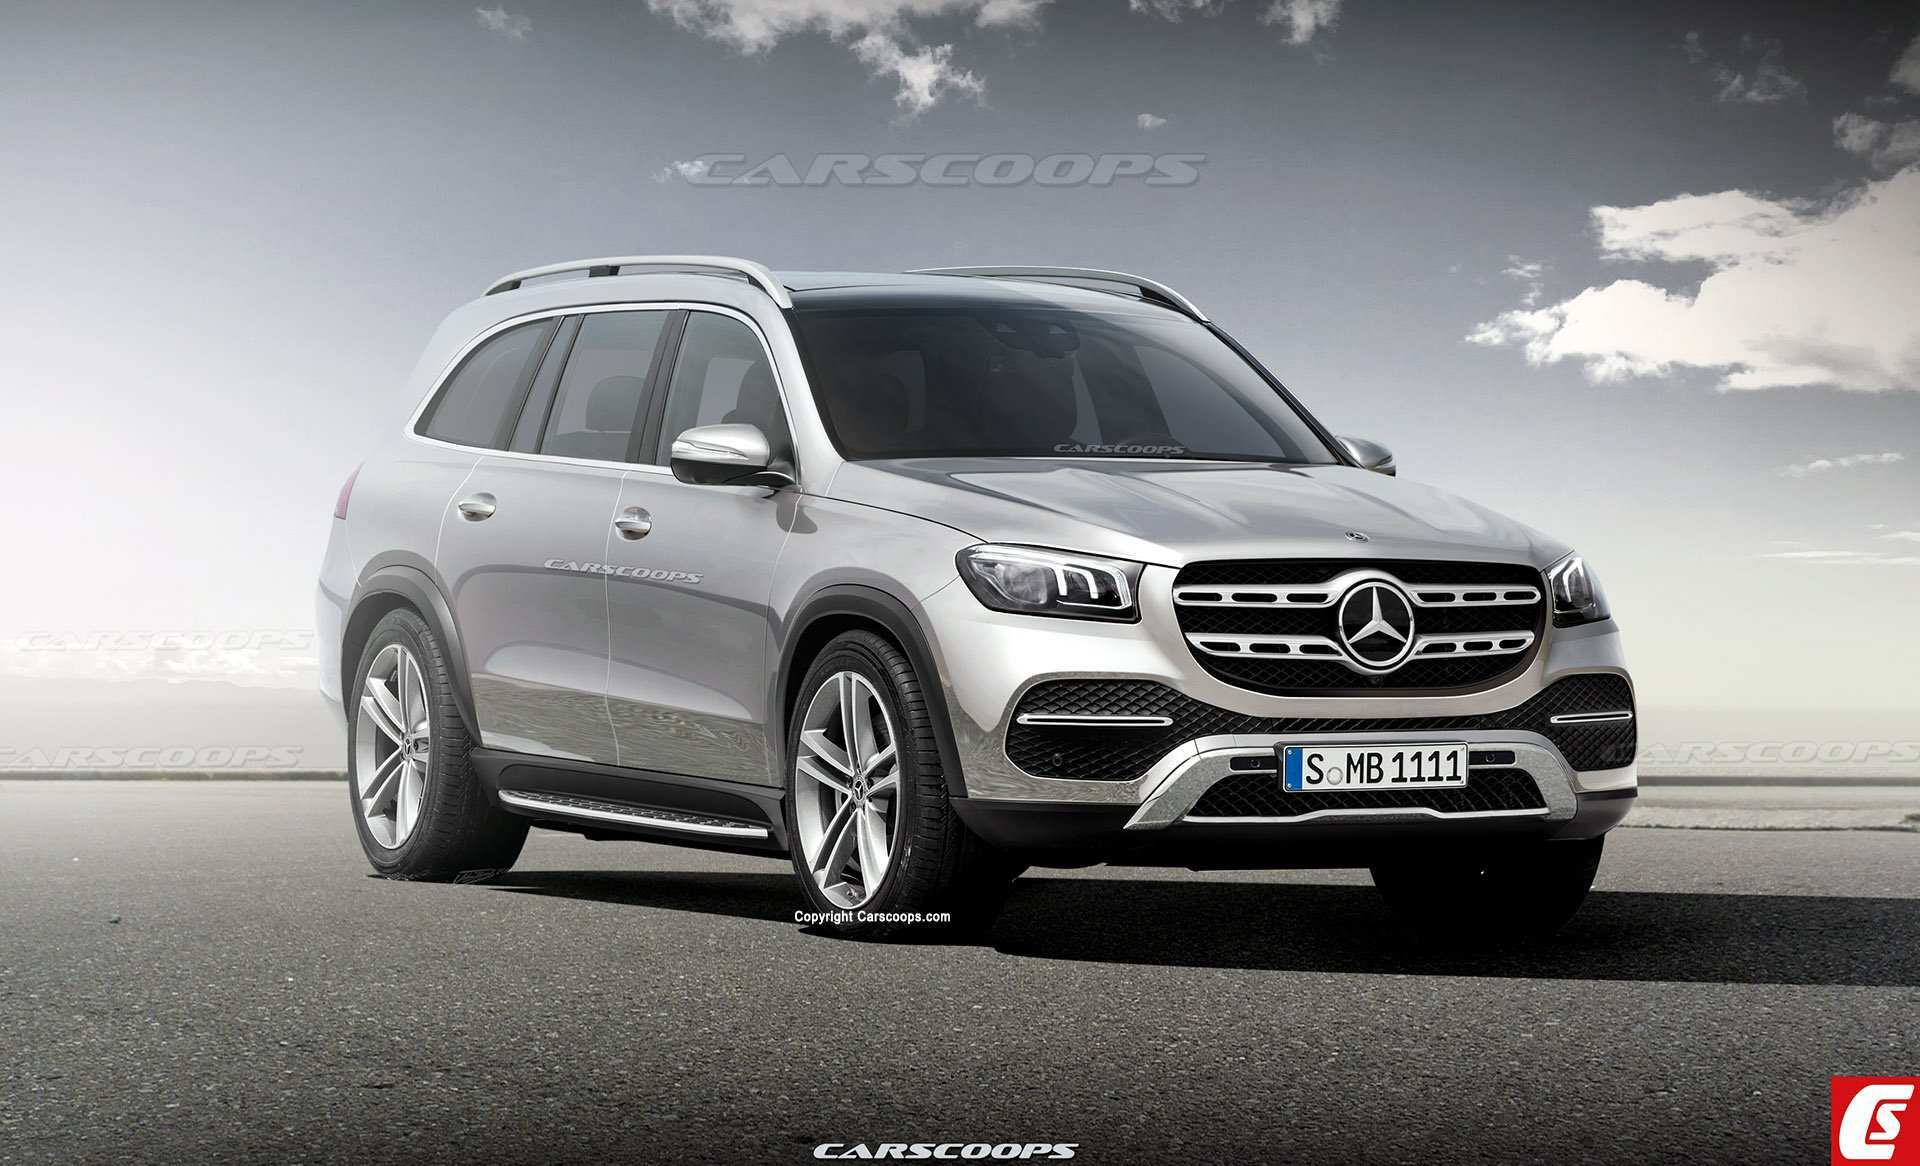 25 Great 2020 Mercedes GLS Reviews with 2020 Mercedes GLS